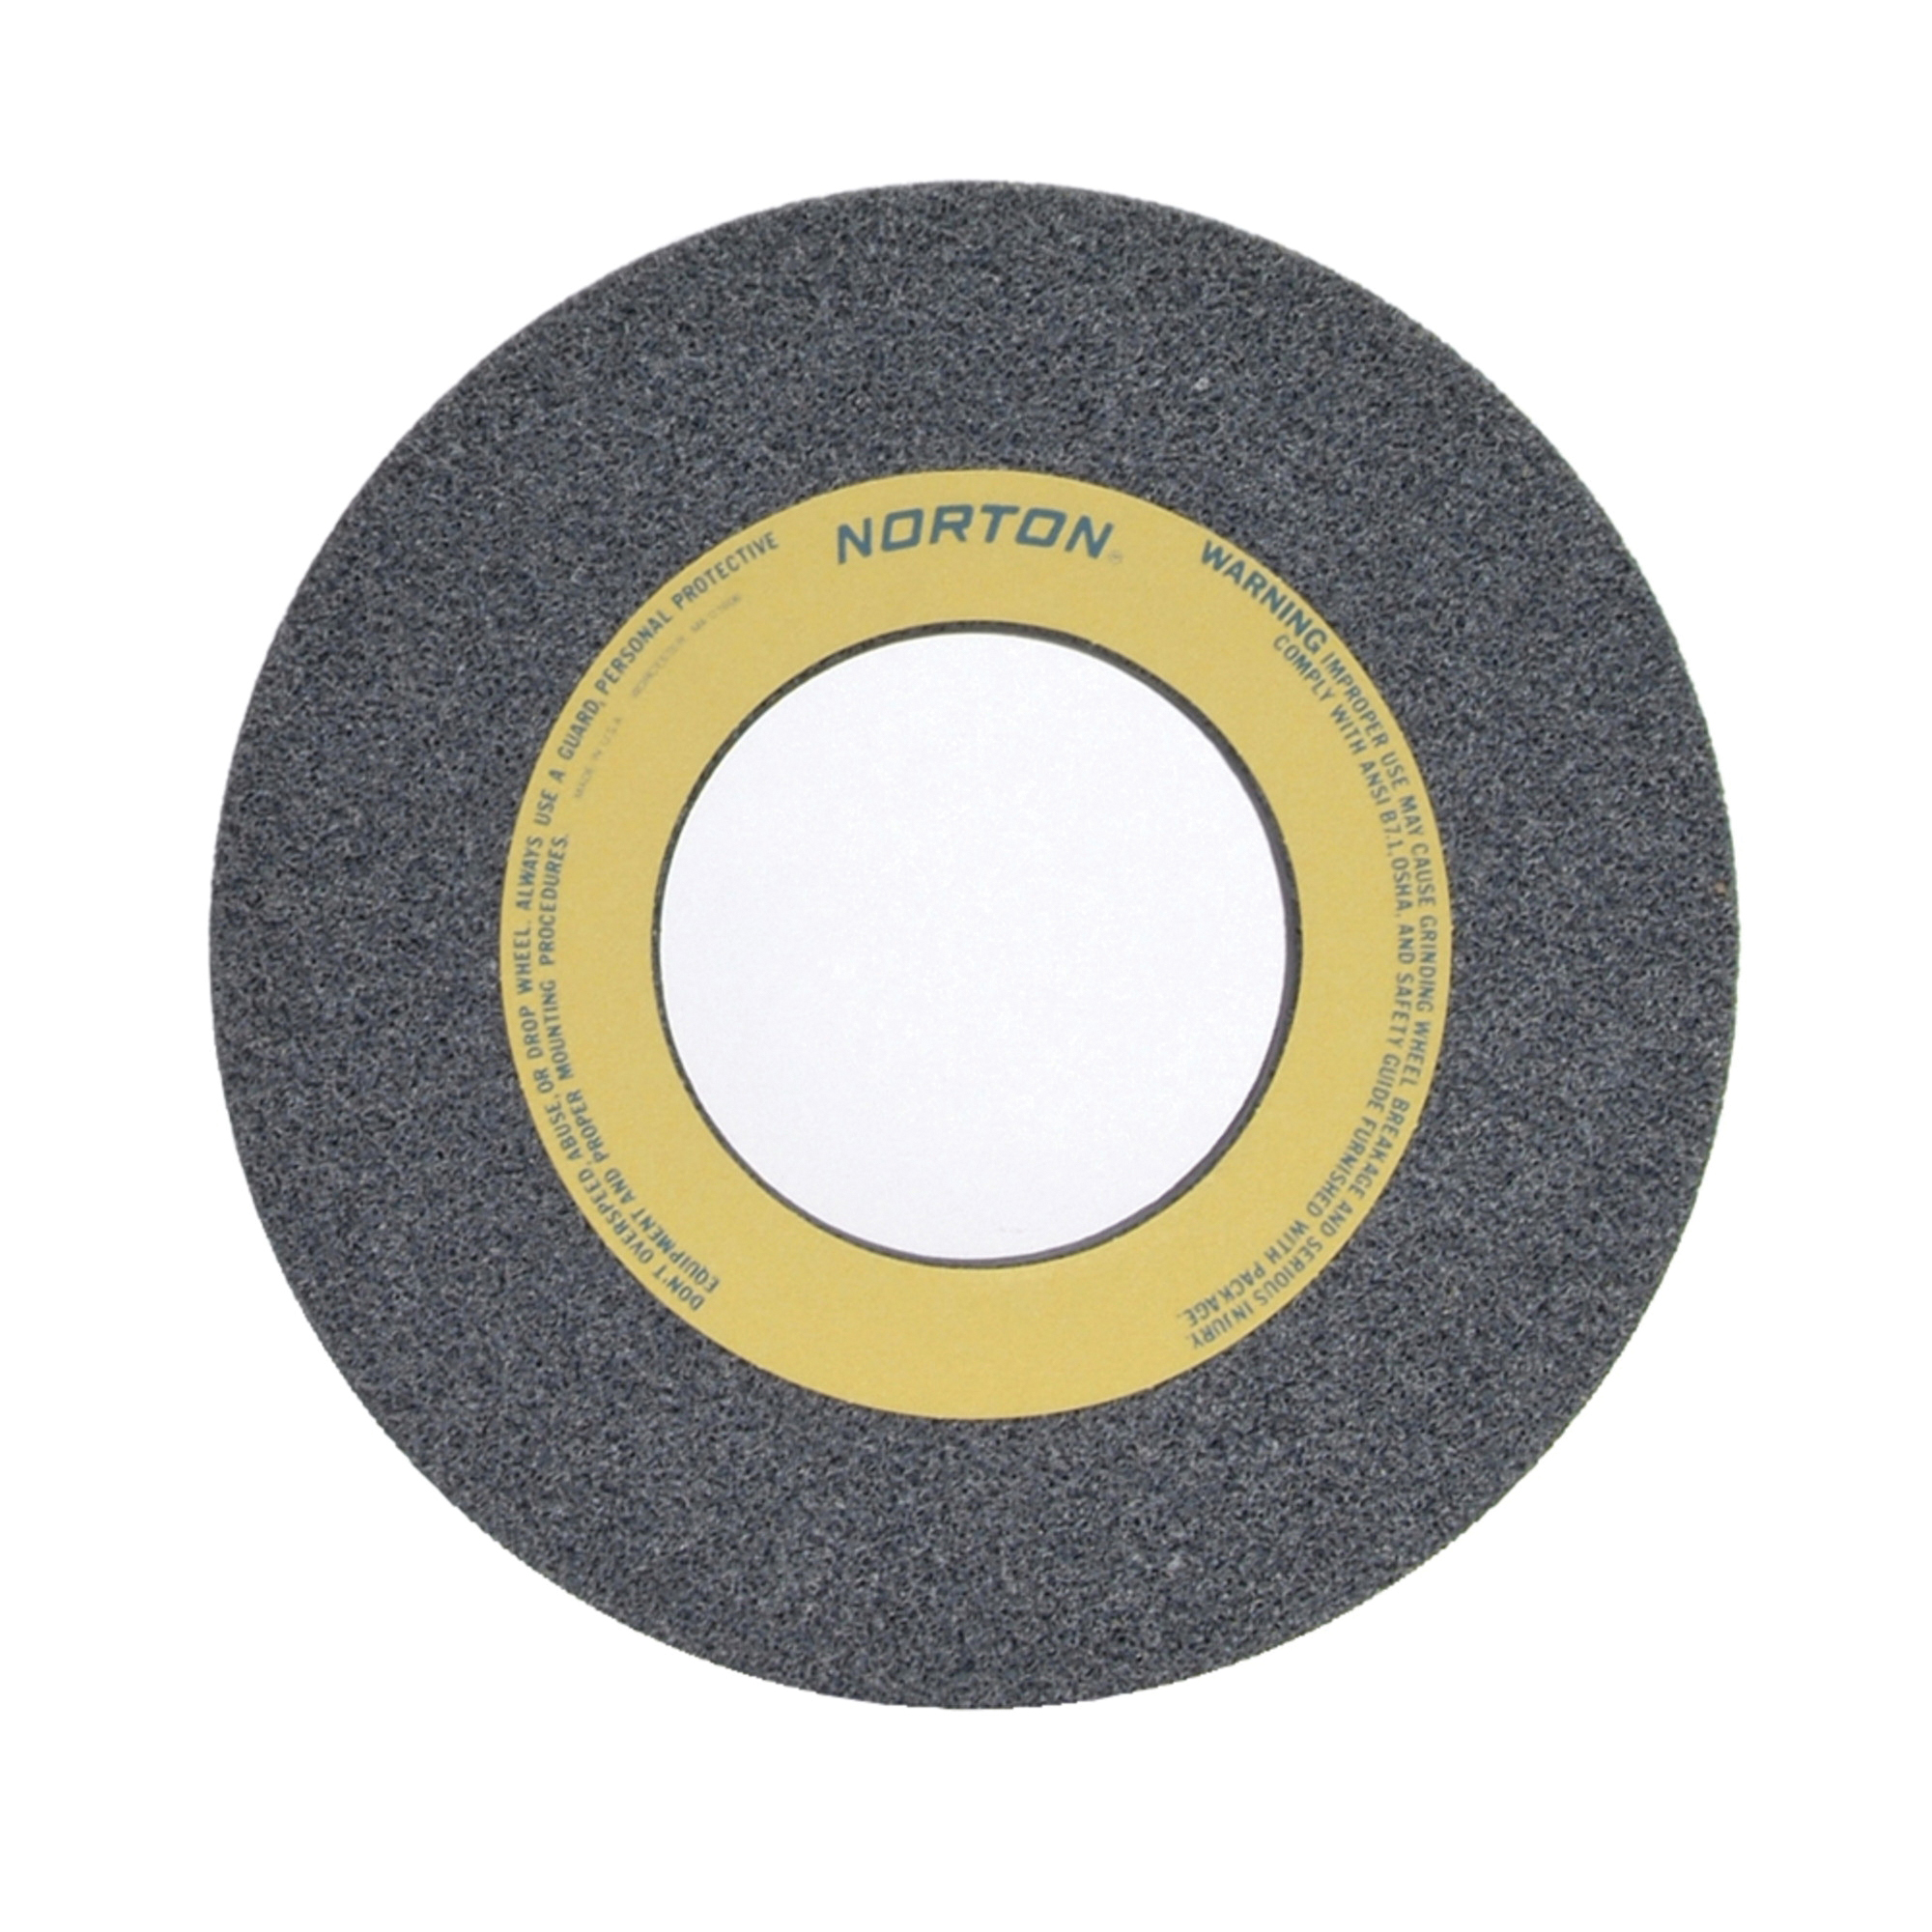 Norton® 66253364238 32A Straight Toolroom Wheel, 14 in Dia x 1-1/2 in THK, 5 in Center Hole, 46 Grit, Aluminum Oxide Abrasive